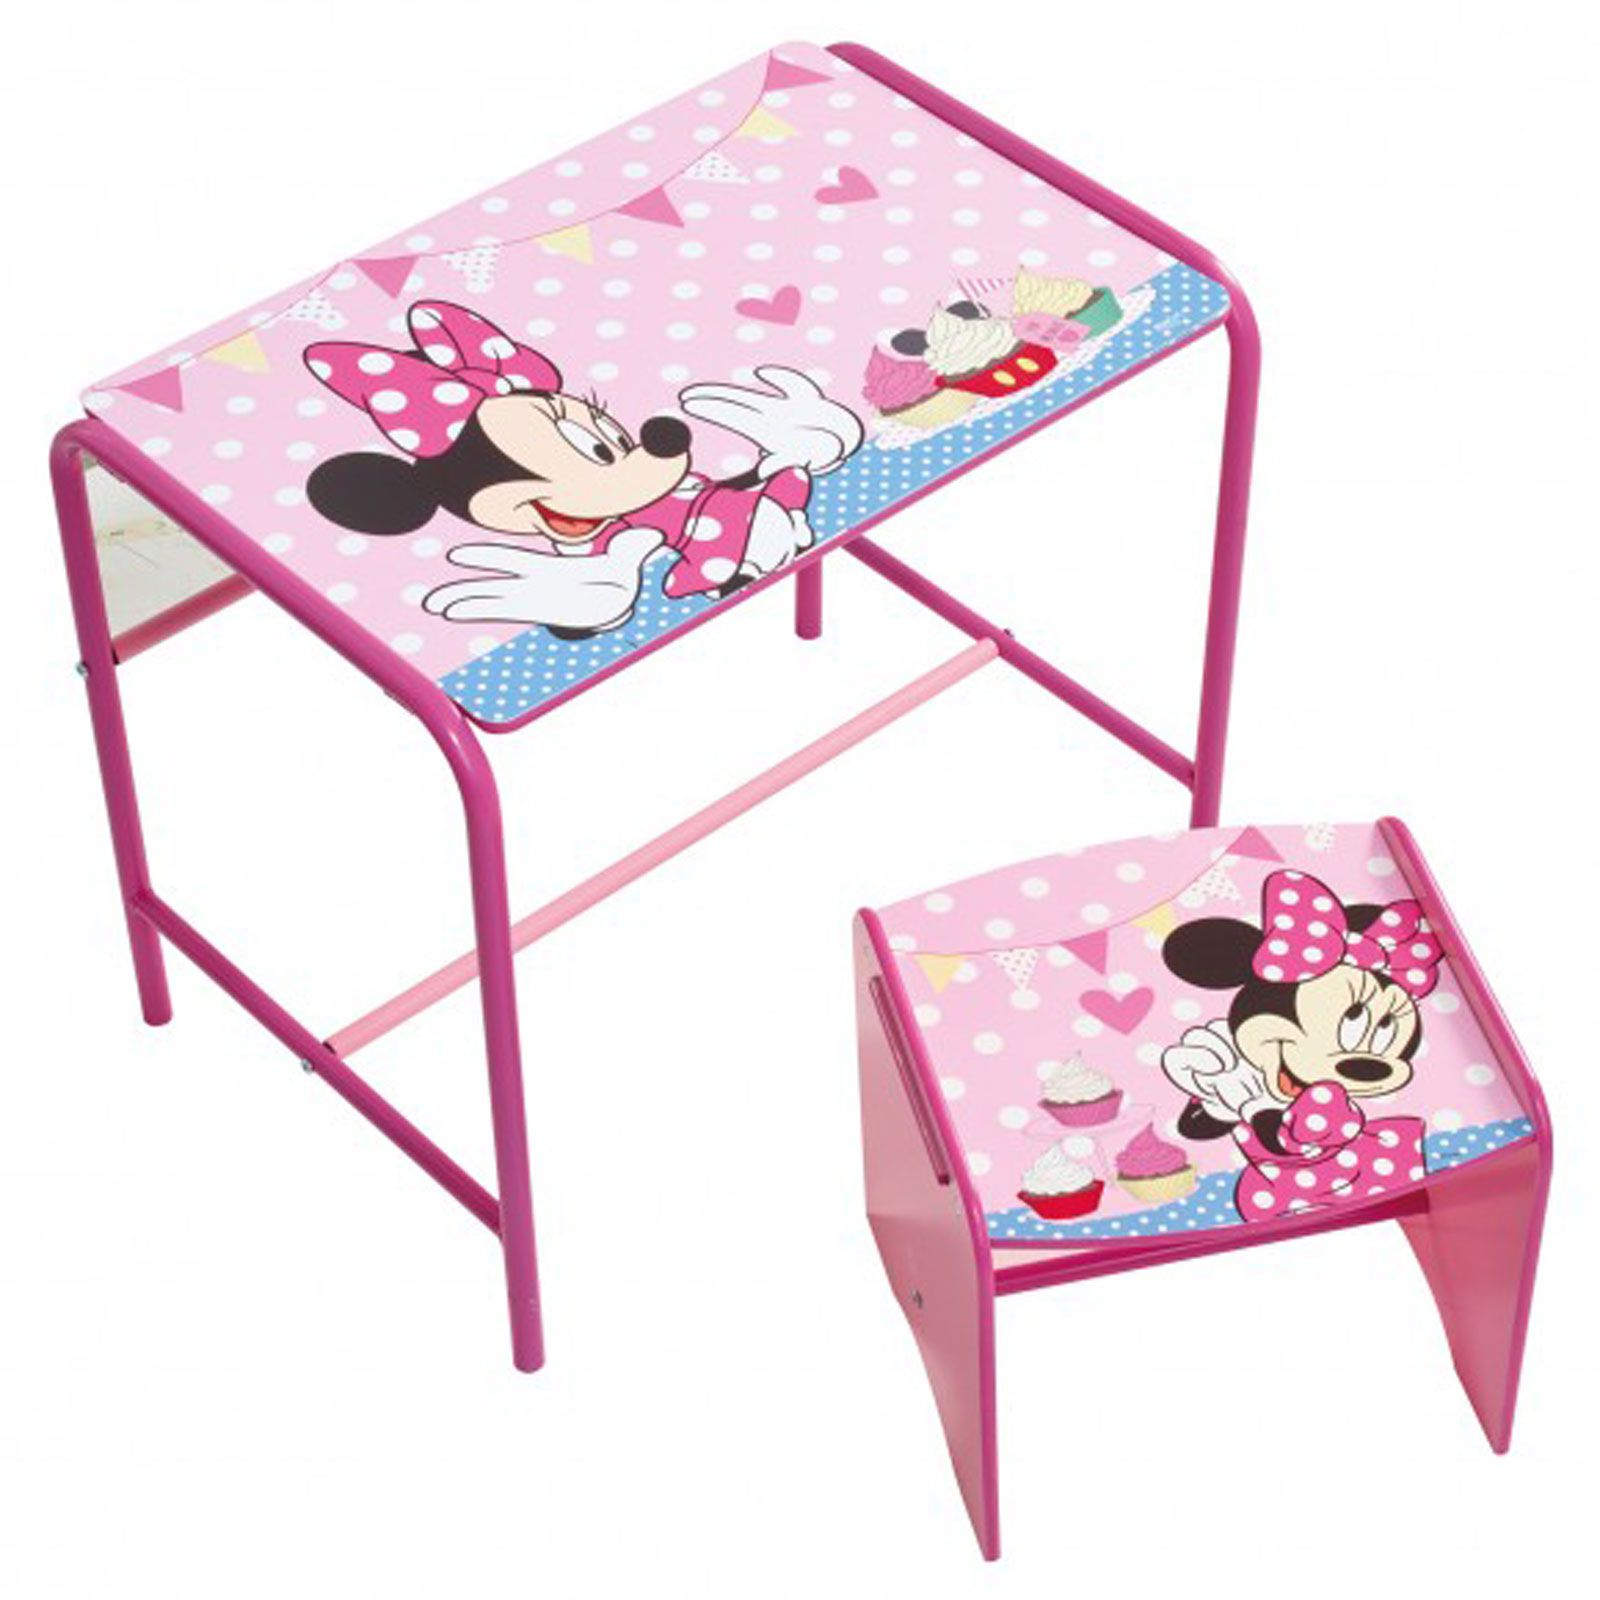 MINNIE MOUSE DOODLE DESK STOOL NEW BEDROOM FURNITURE GIRLS ROOM 472MIZ0